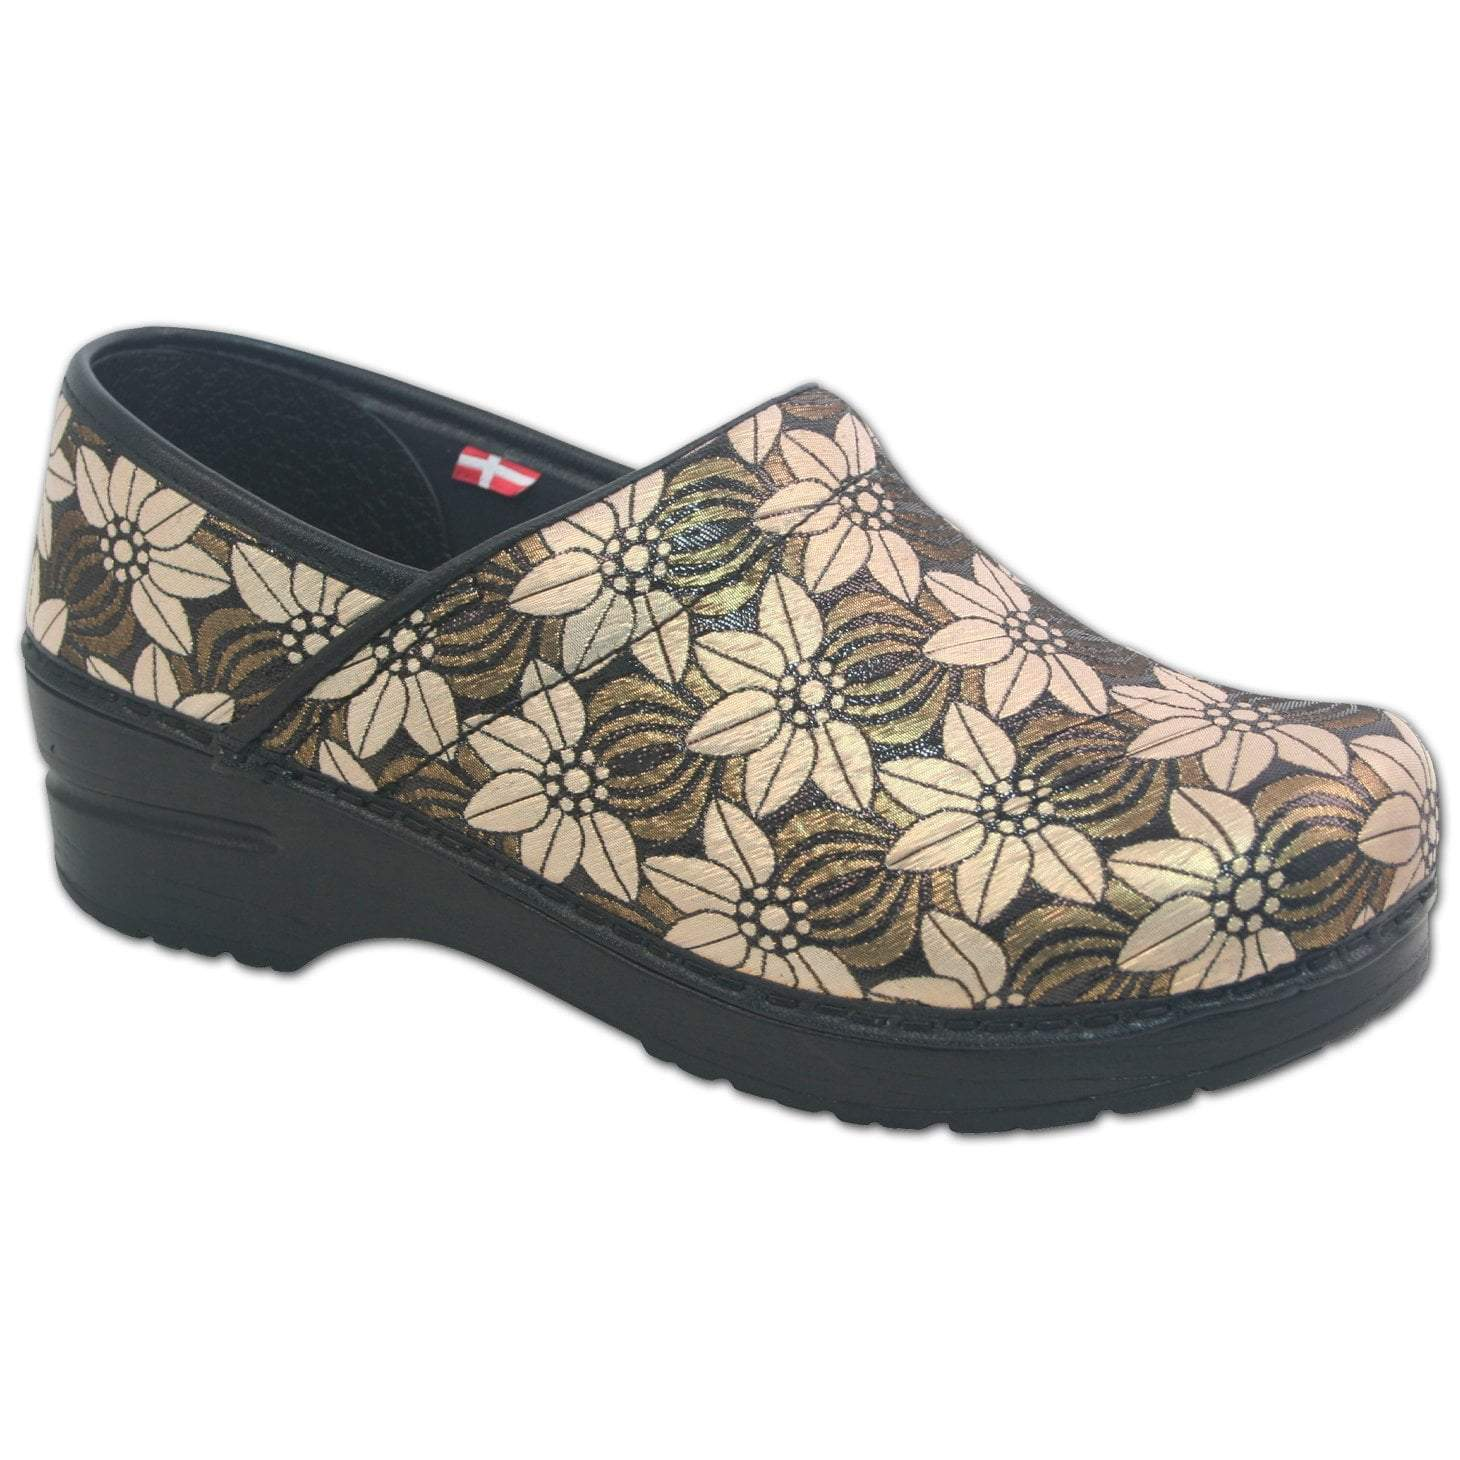 Sanita Valera Women's Closed Back Clog